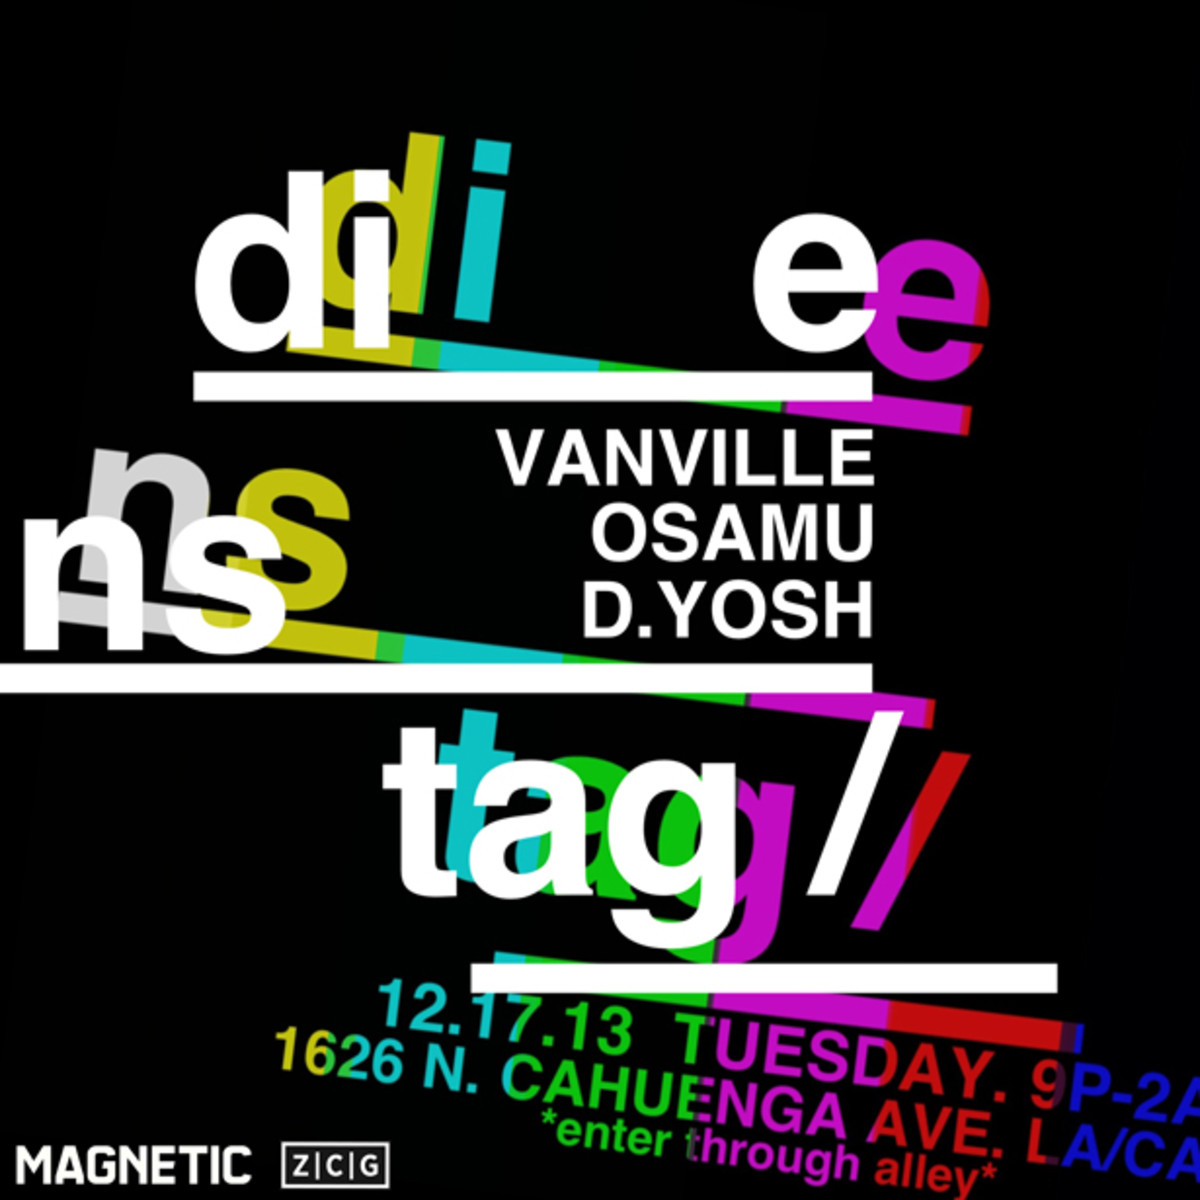 Celebrate The Holidays At Dienstag // Tuesday Pop Up 12/17 With VanVille, Osamu & D. Yosh